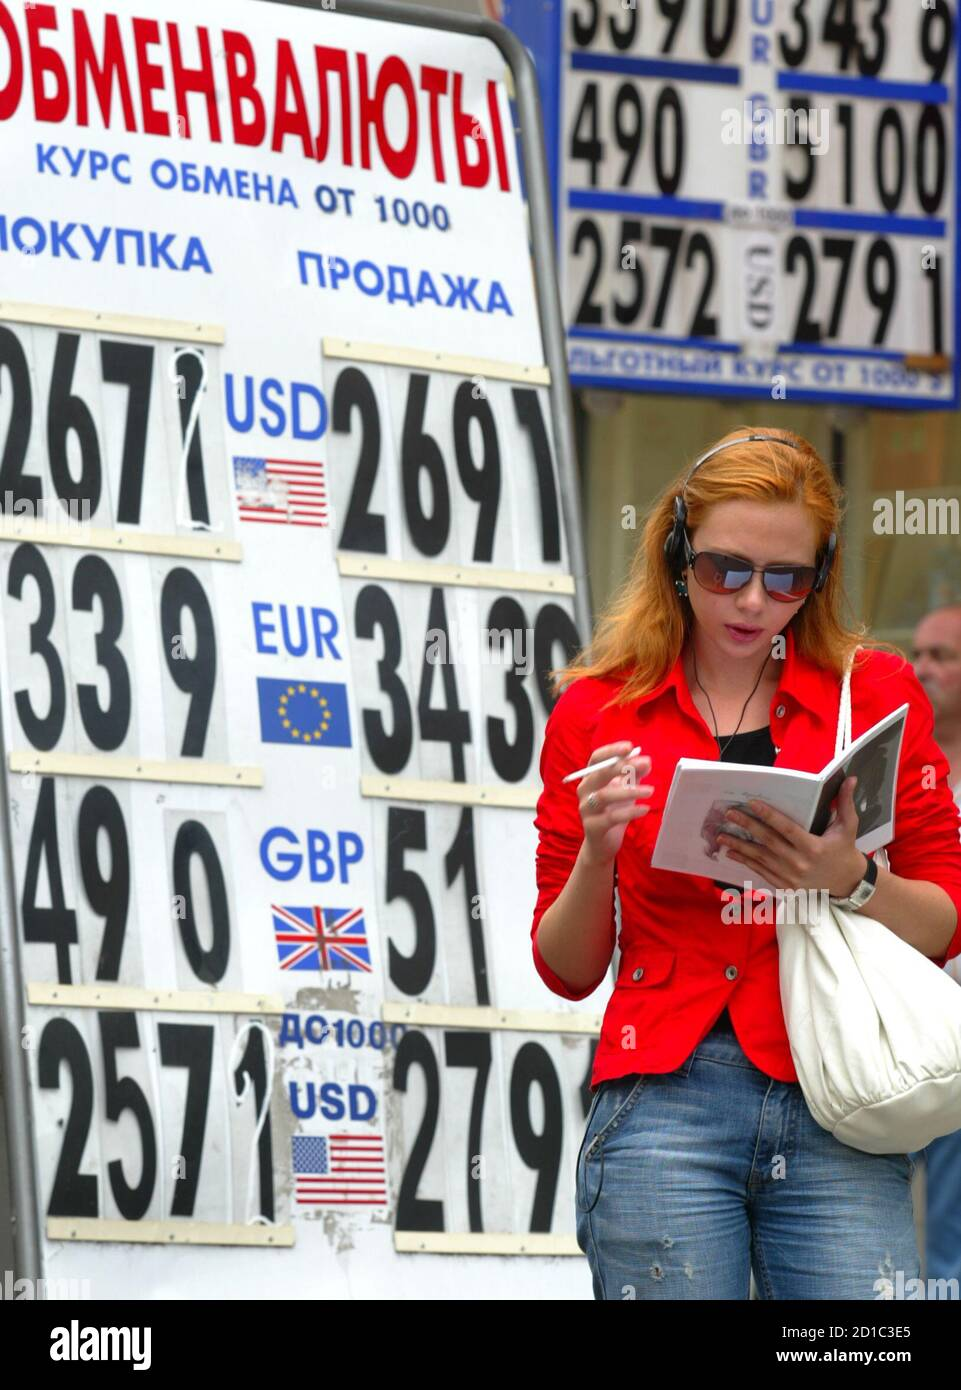 A woman reads as she stands in front of a currency exchange rate board in Moscow June 30, 2006. The many, often derogatory, names Russians have for their roubles stem from the Soviet Union, where the national currency was officially more valuable than the dollar but worthless outside its borders. From Saturday, officials hope, that age will be past. The last restrictions on the rouble will be scrapped, and it will become convertible -- a currency like the dollar or the yen.   REUTERS/Ivan Chernichkin (RUSSIA) Stock Photo